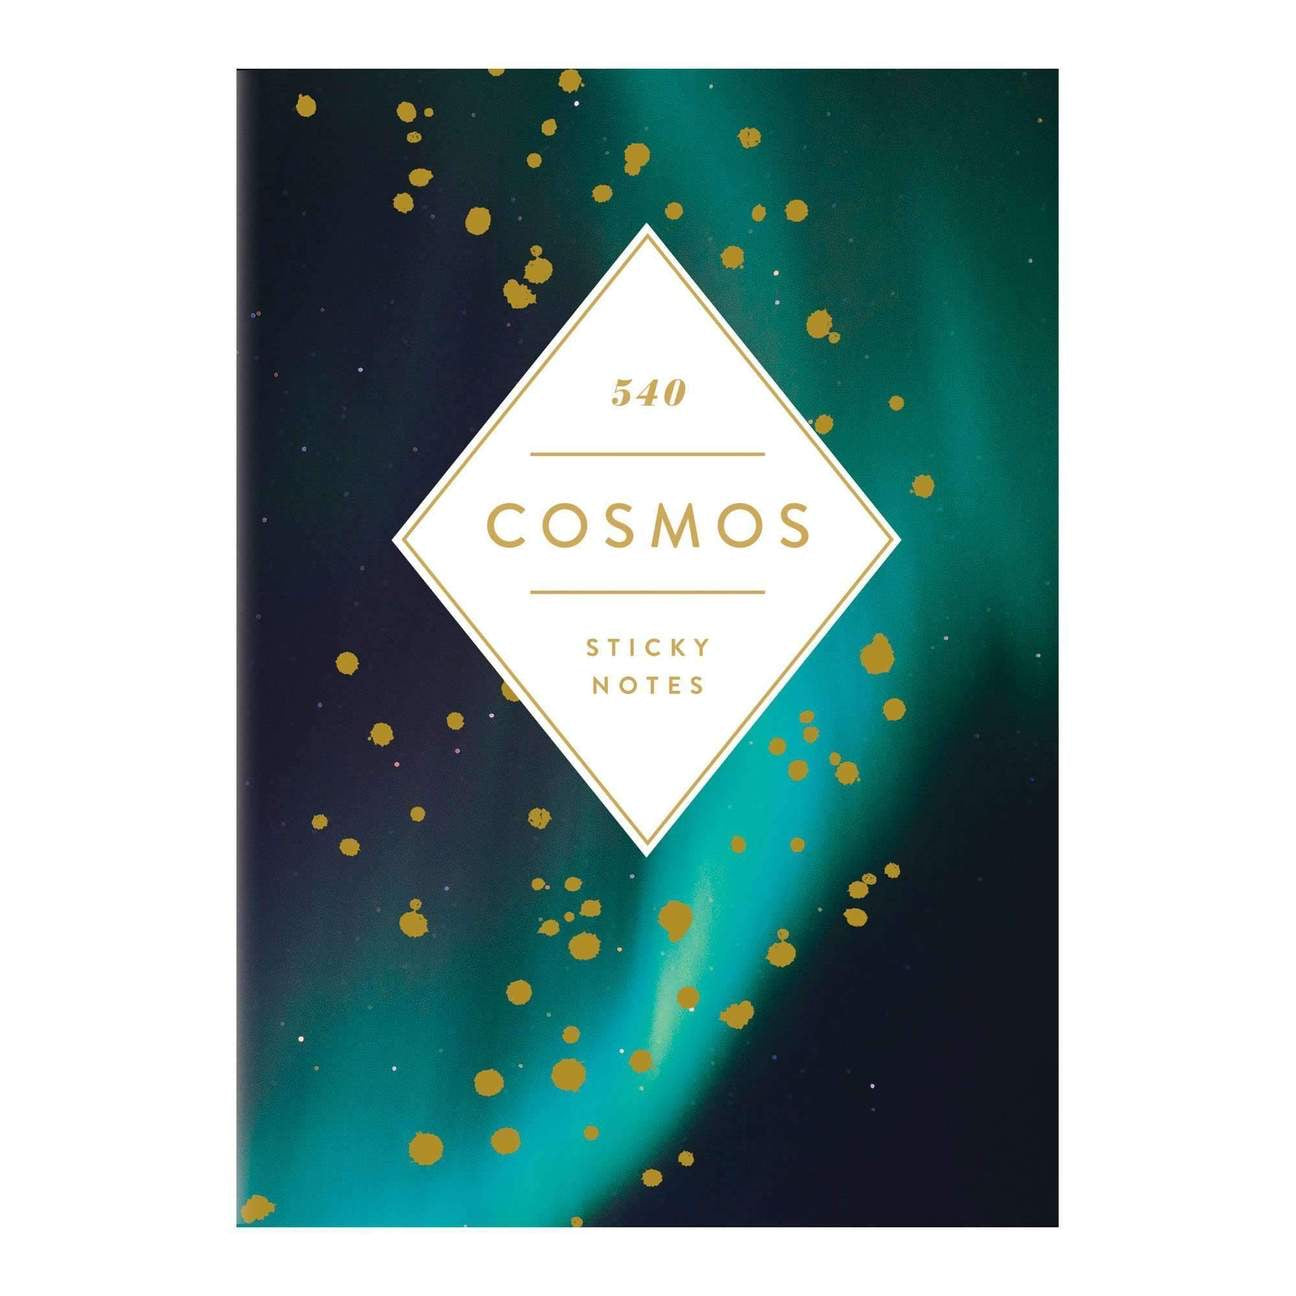 Cosmos Sticky Notes Hardcover Book